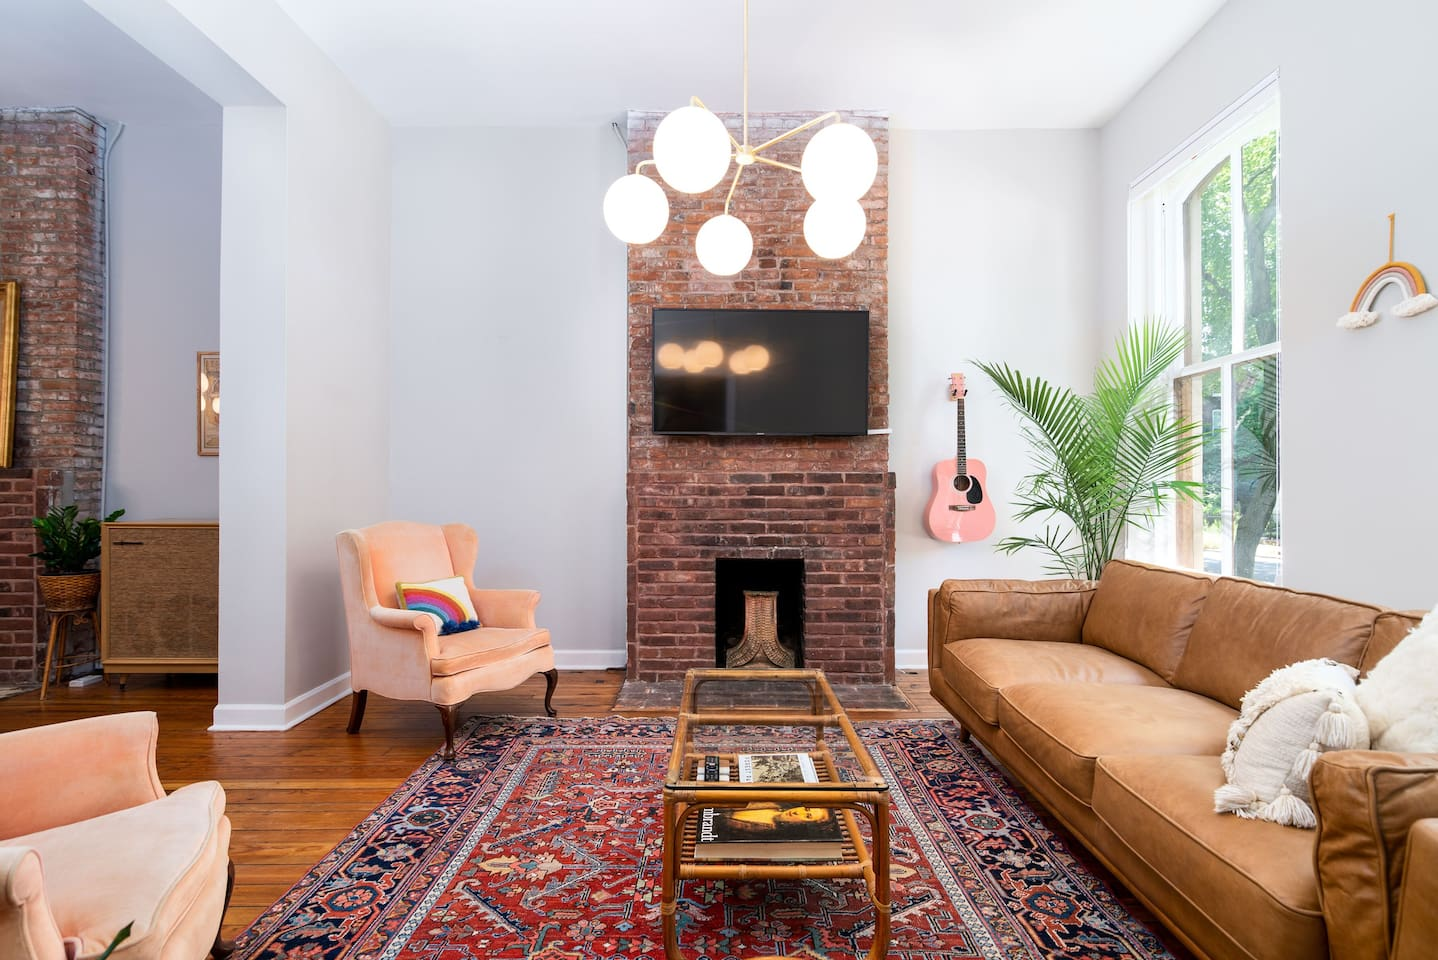 Whether you are watching tv, serenading your friends with the guitar, or sitting around catching up, the living room is the perfect place to gather with friends and family alike.